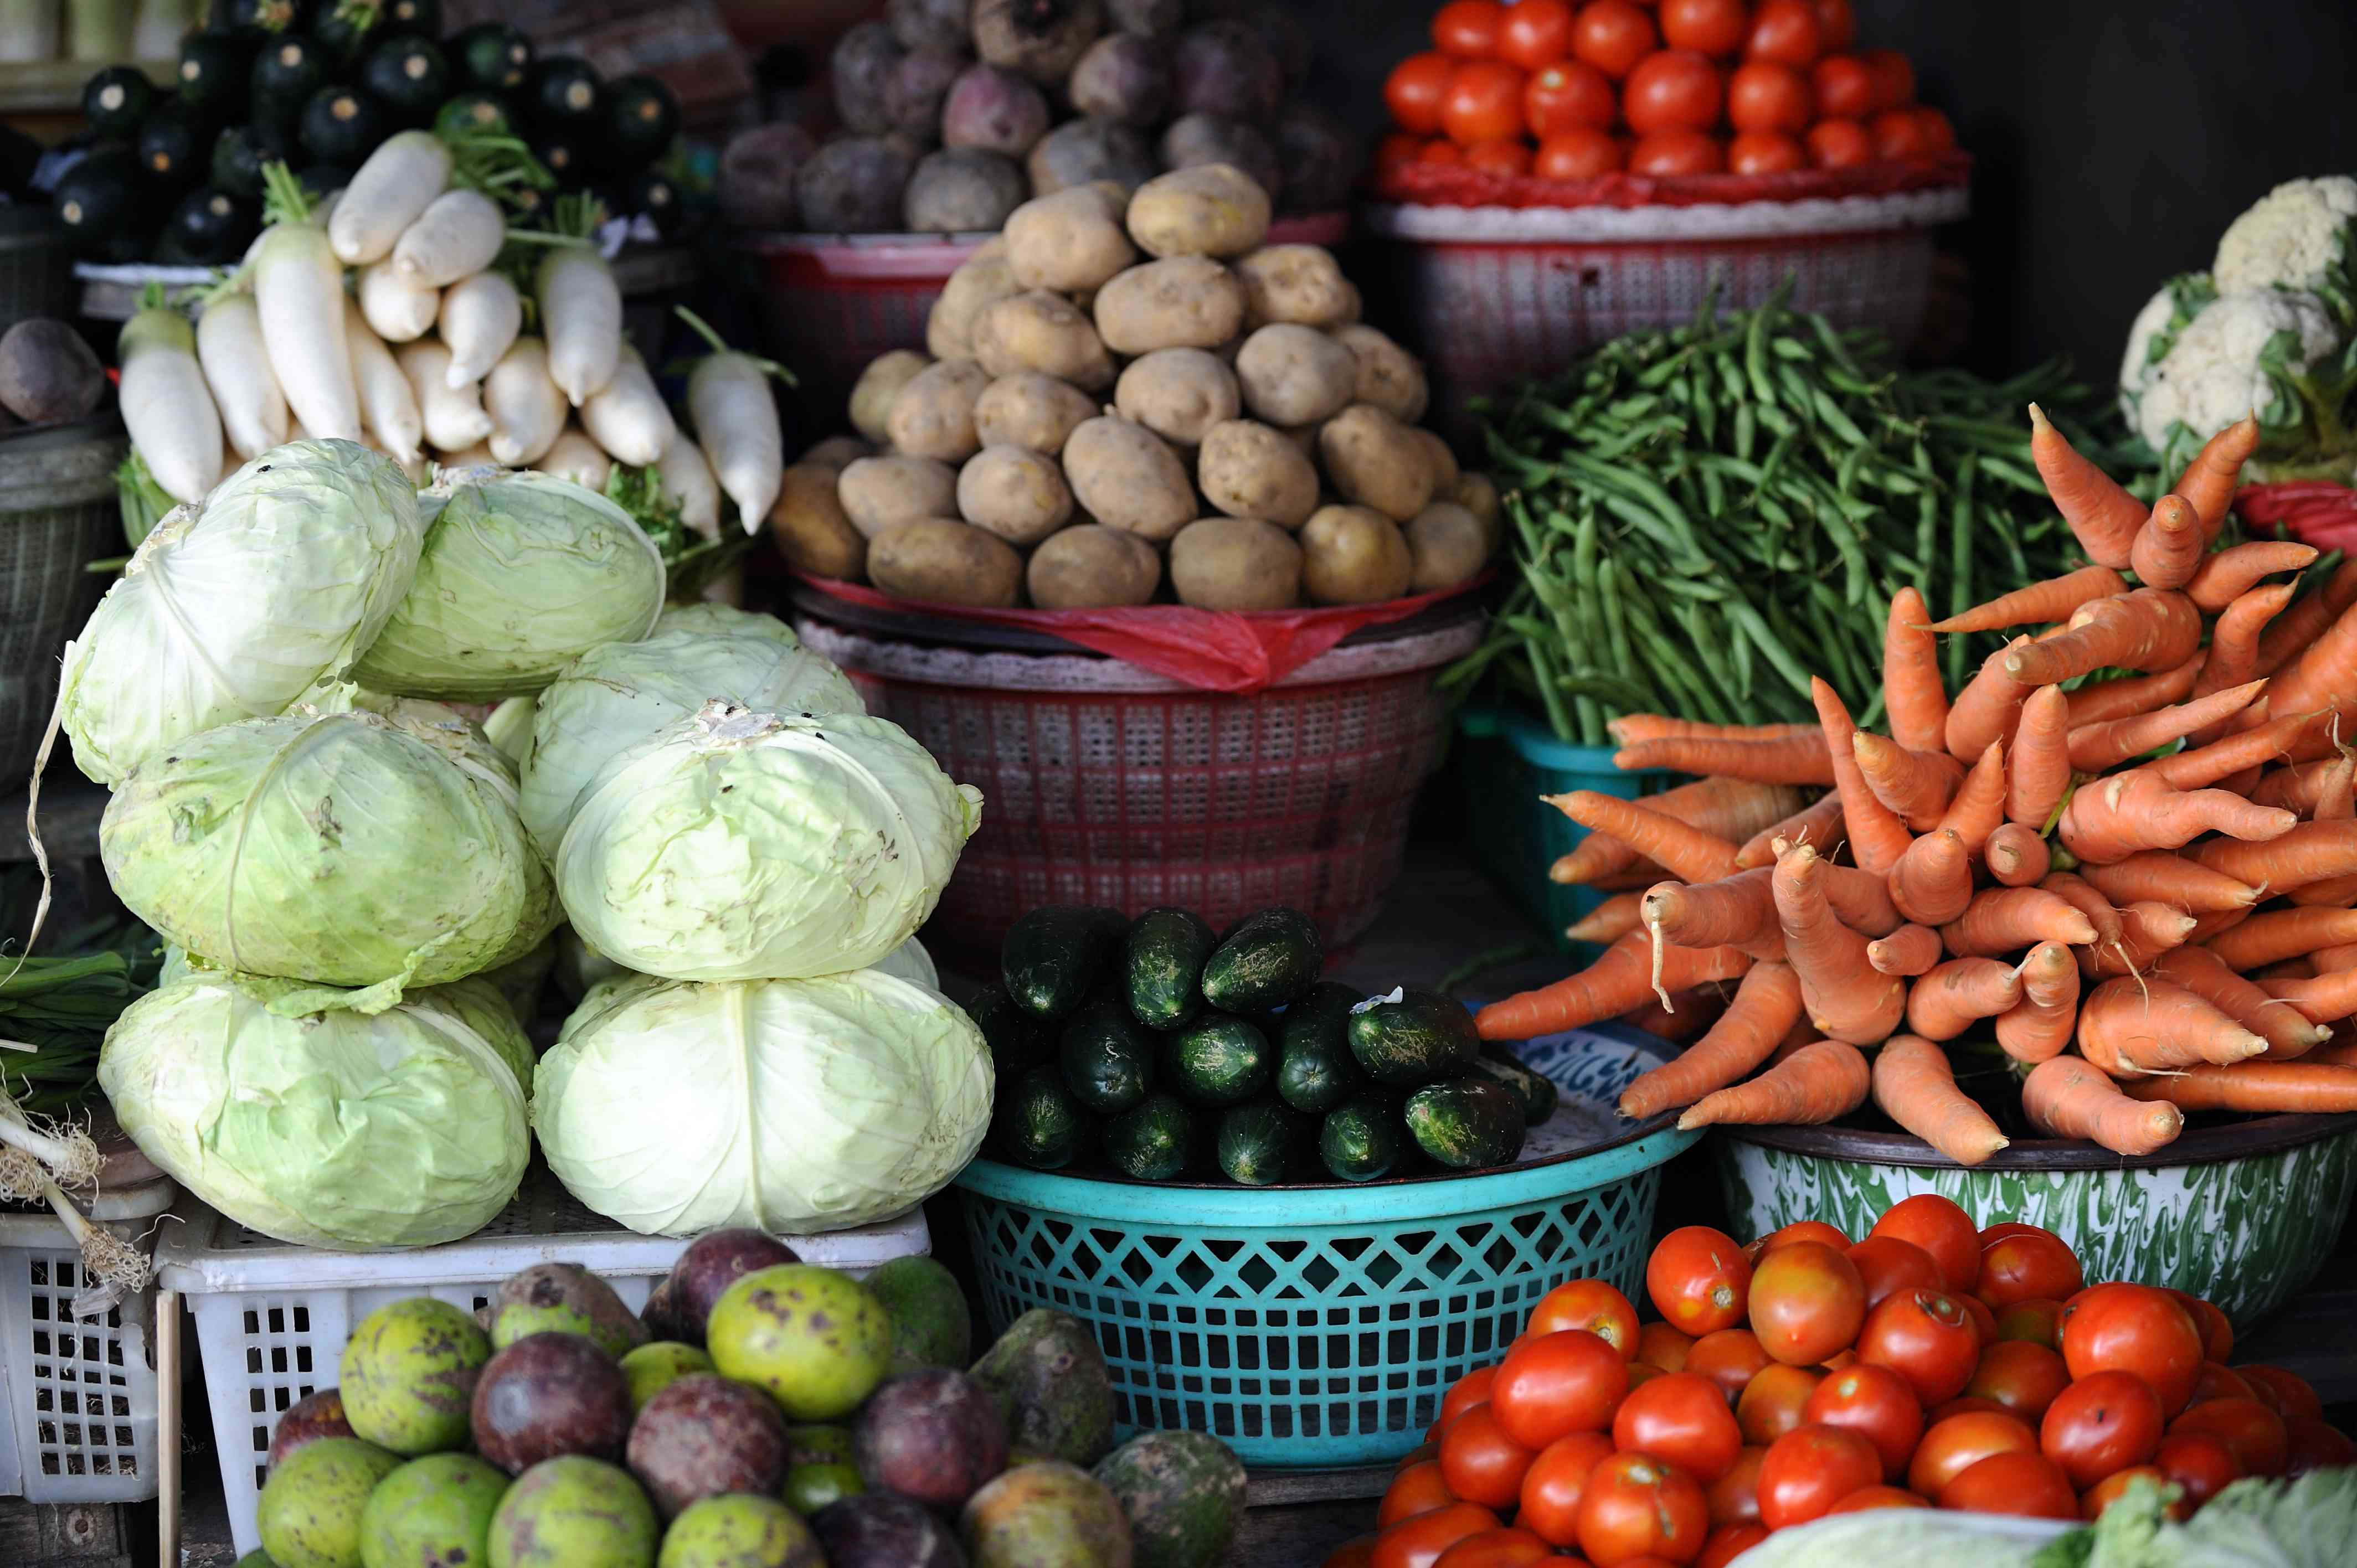 Fresh produce in baskets at a Farmers Market